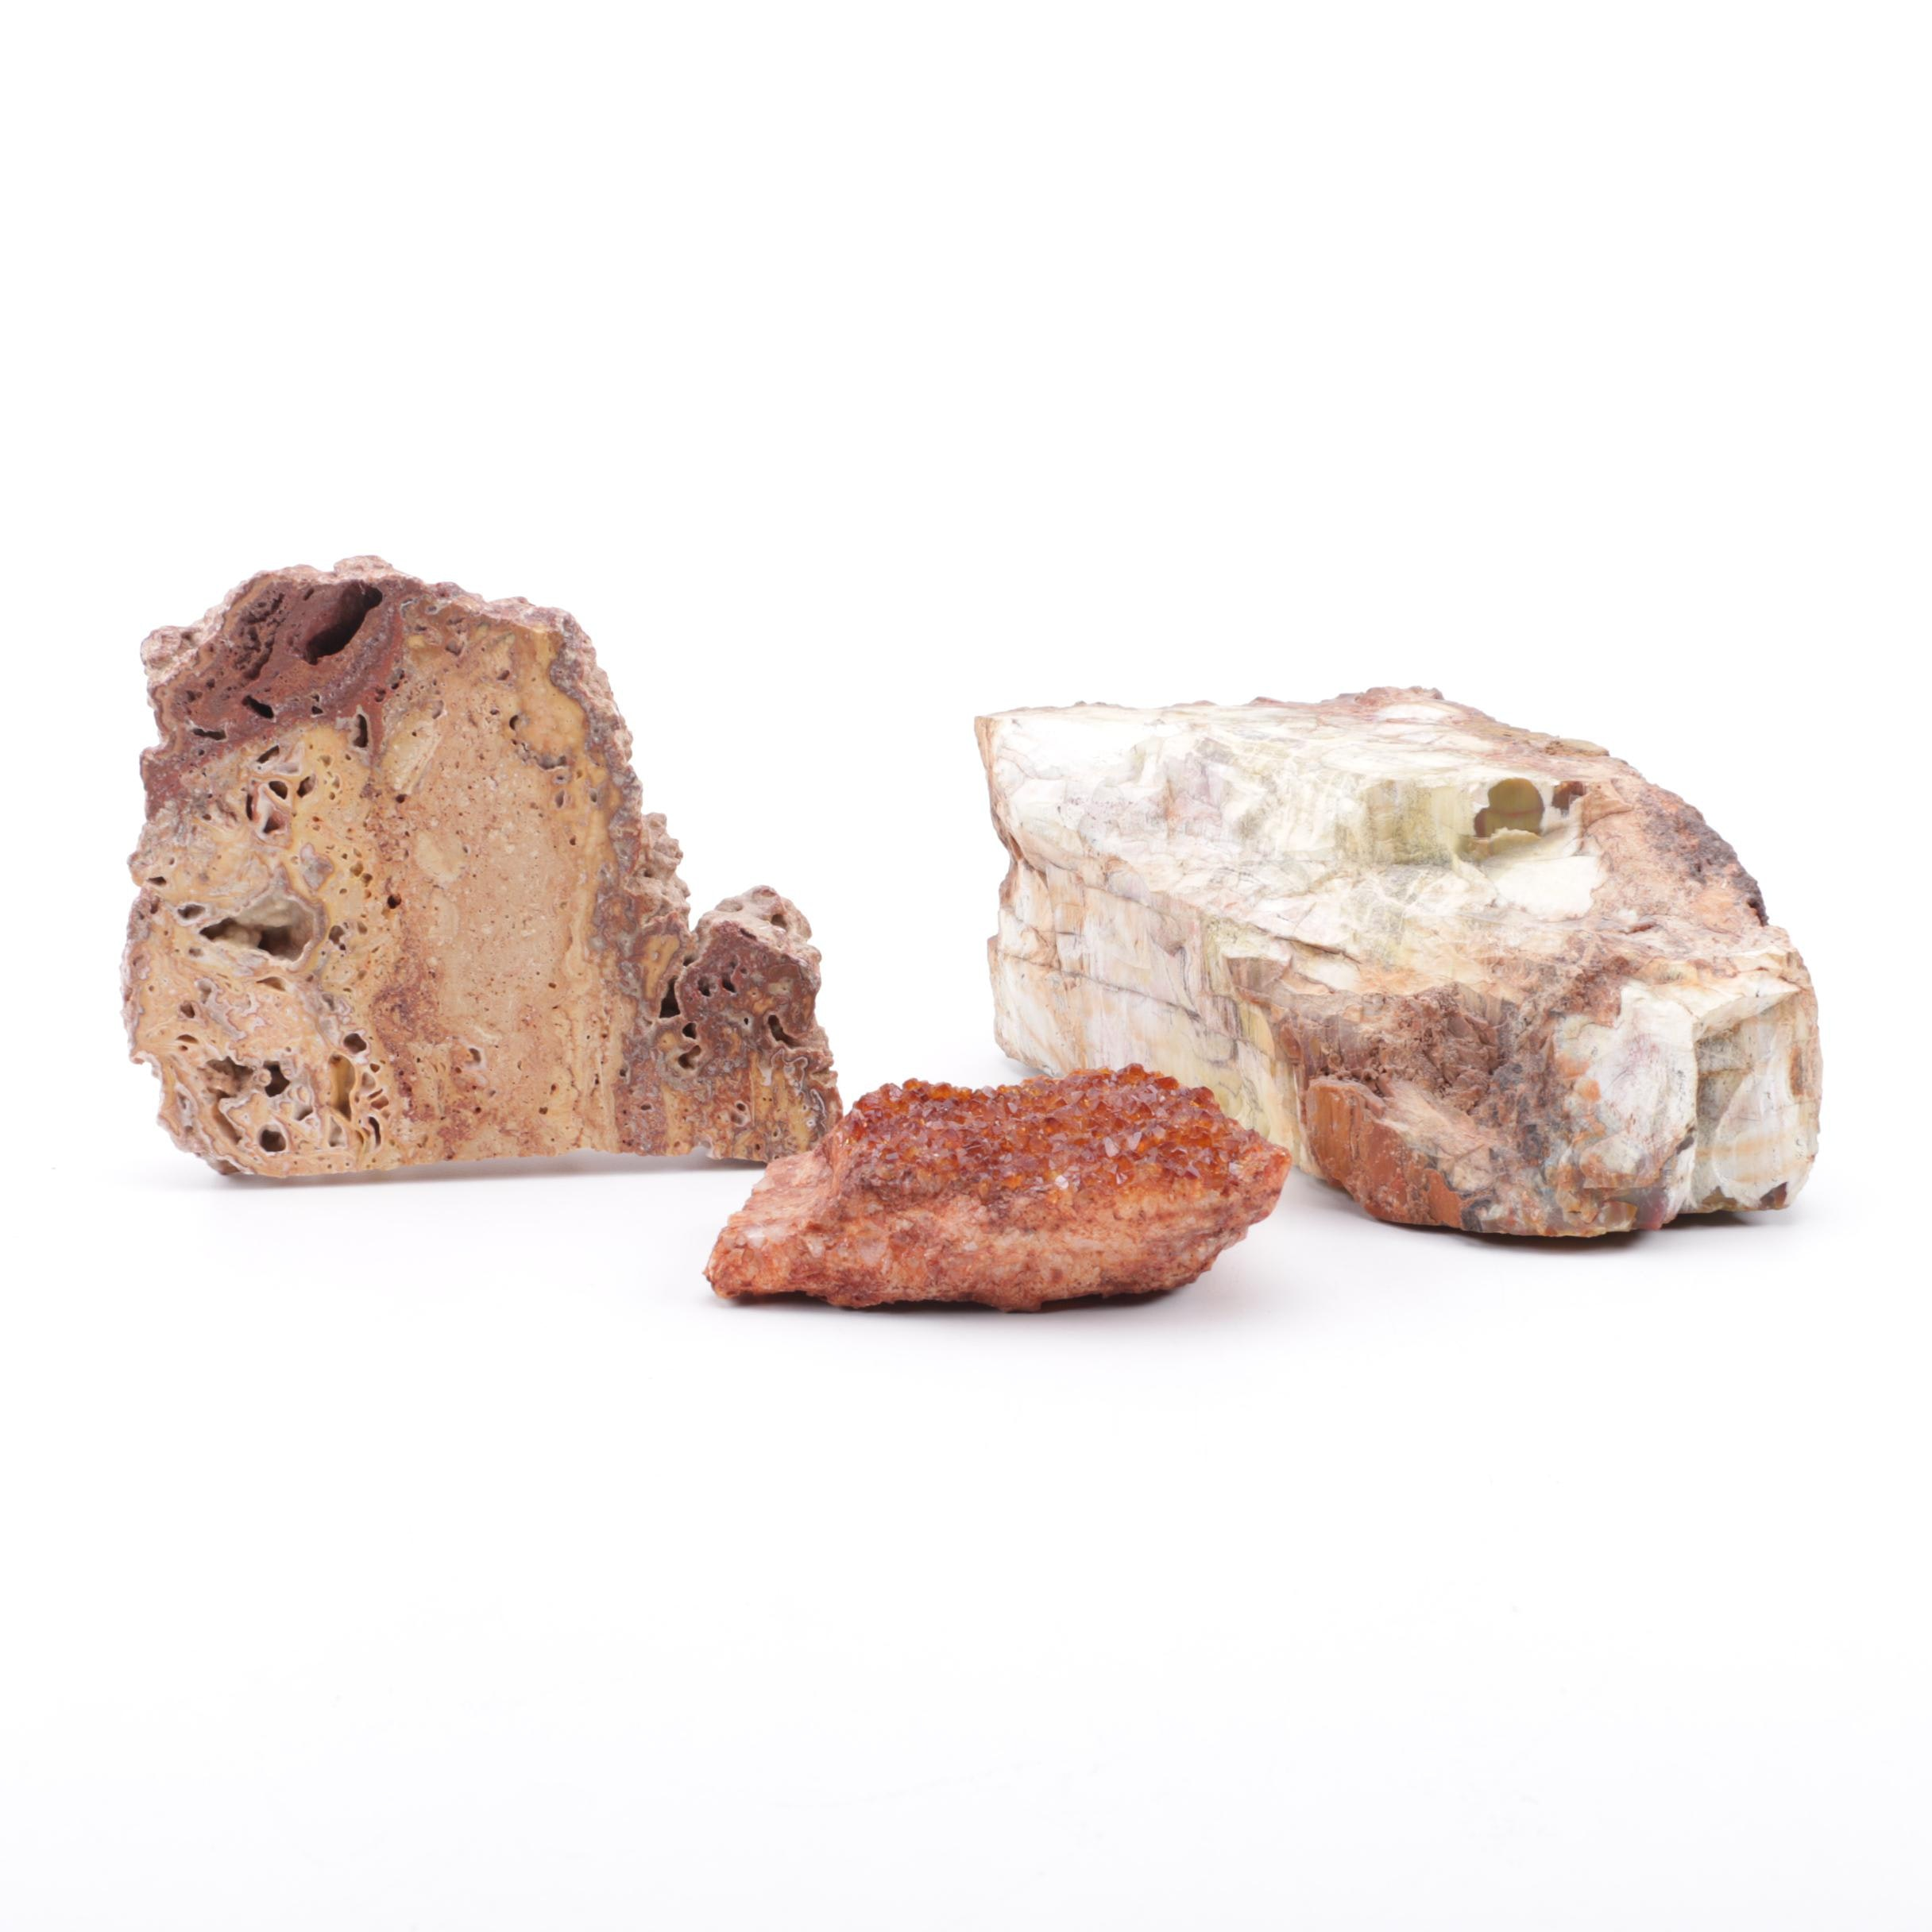 Fossil and Mineral Specimens